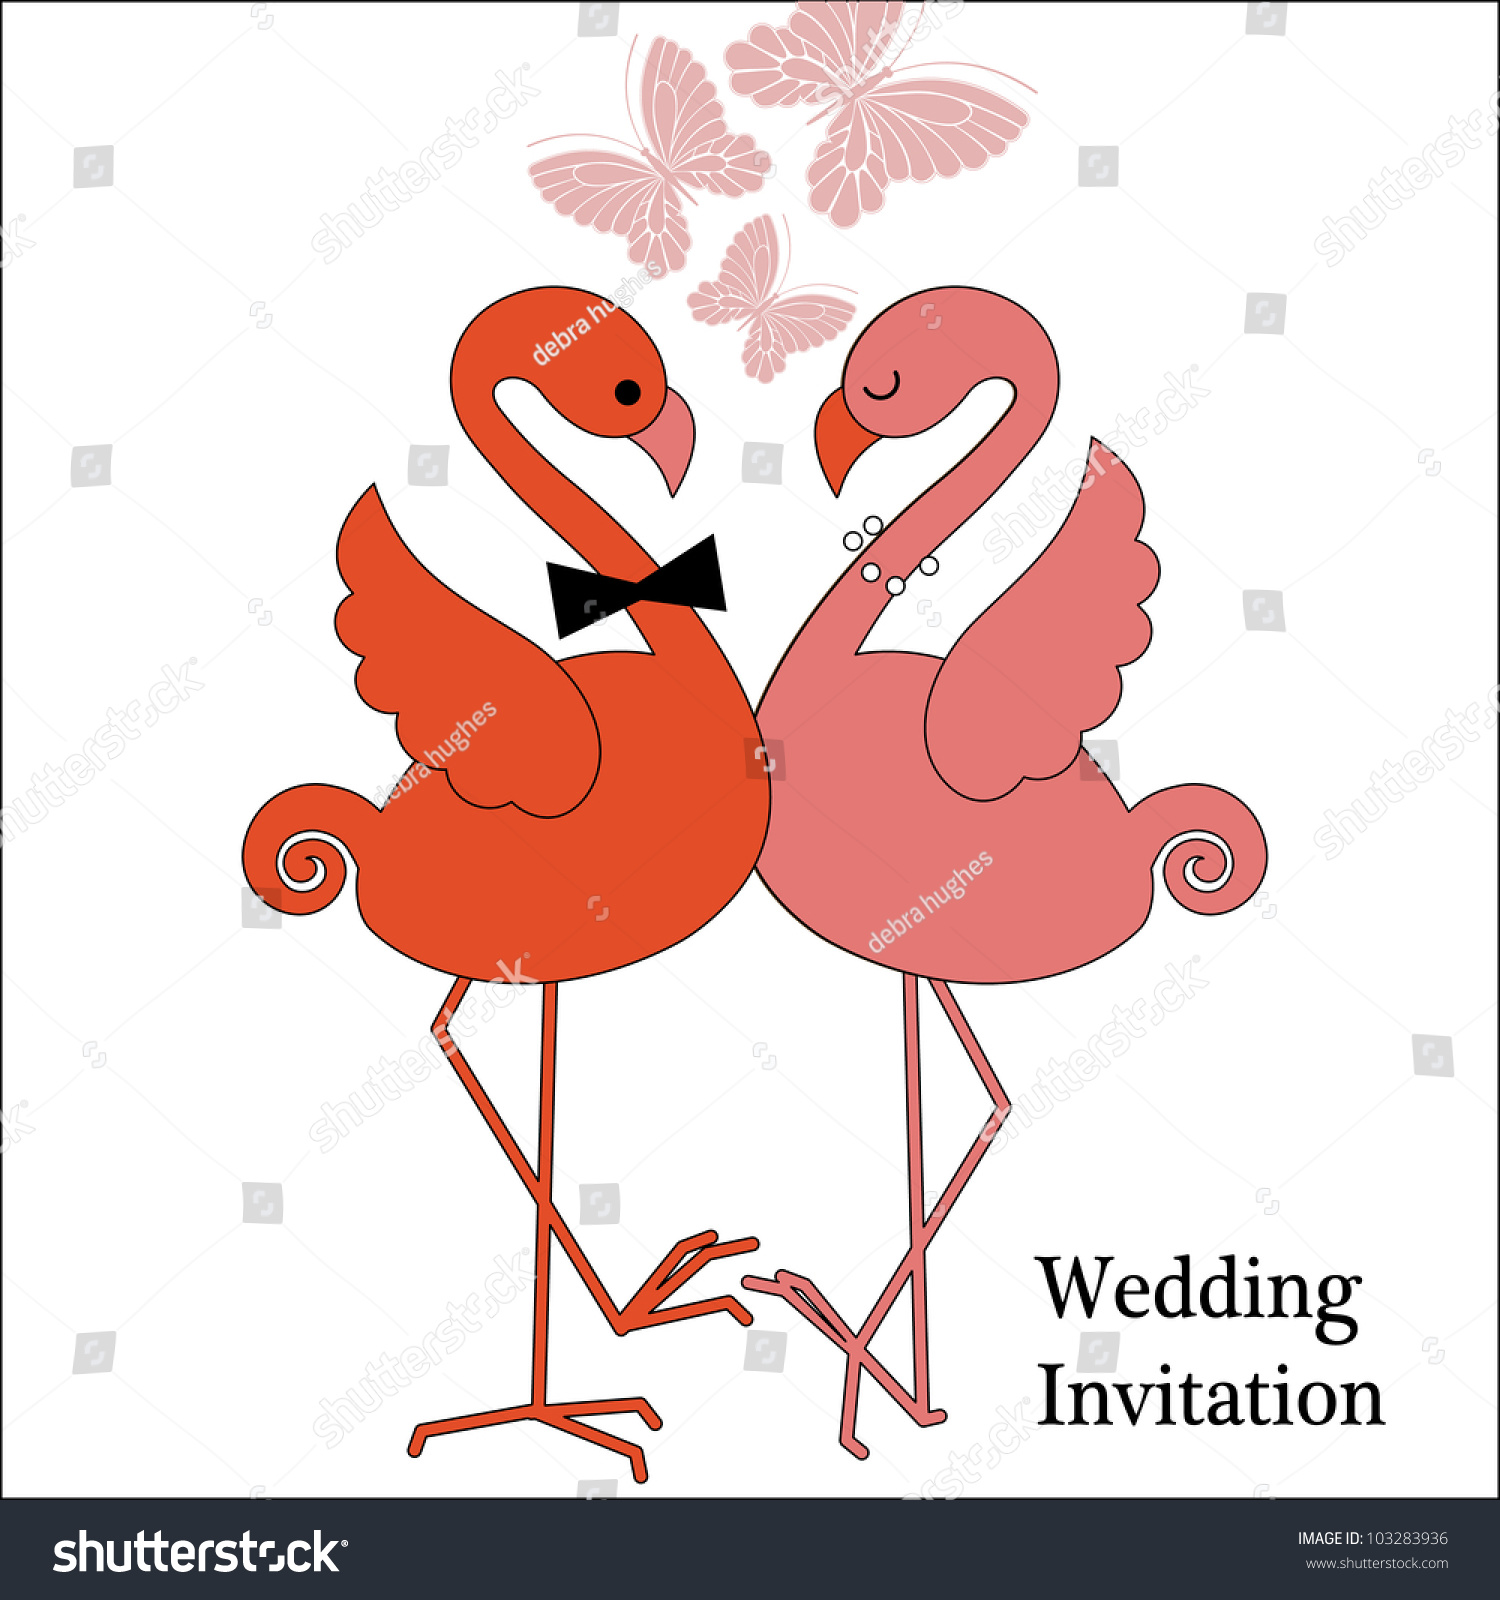 Flamingo Wedding Invitation Stock Vector (Royalty Free) 103283936 ...